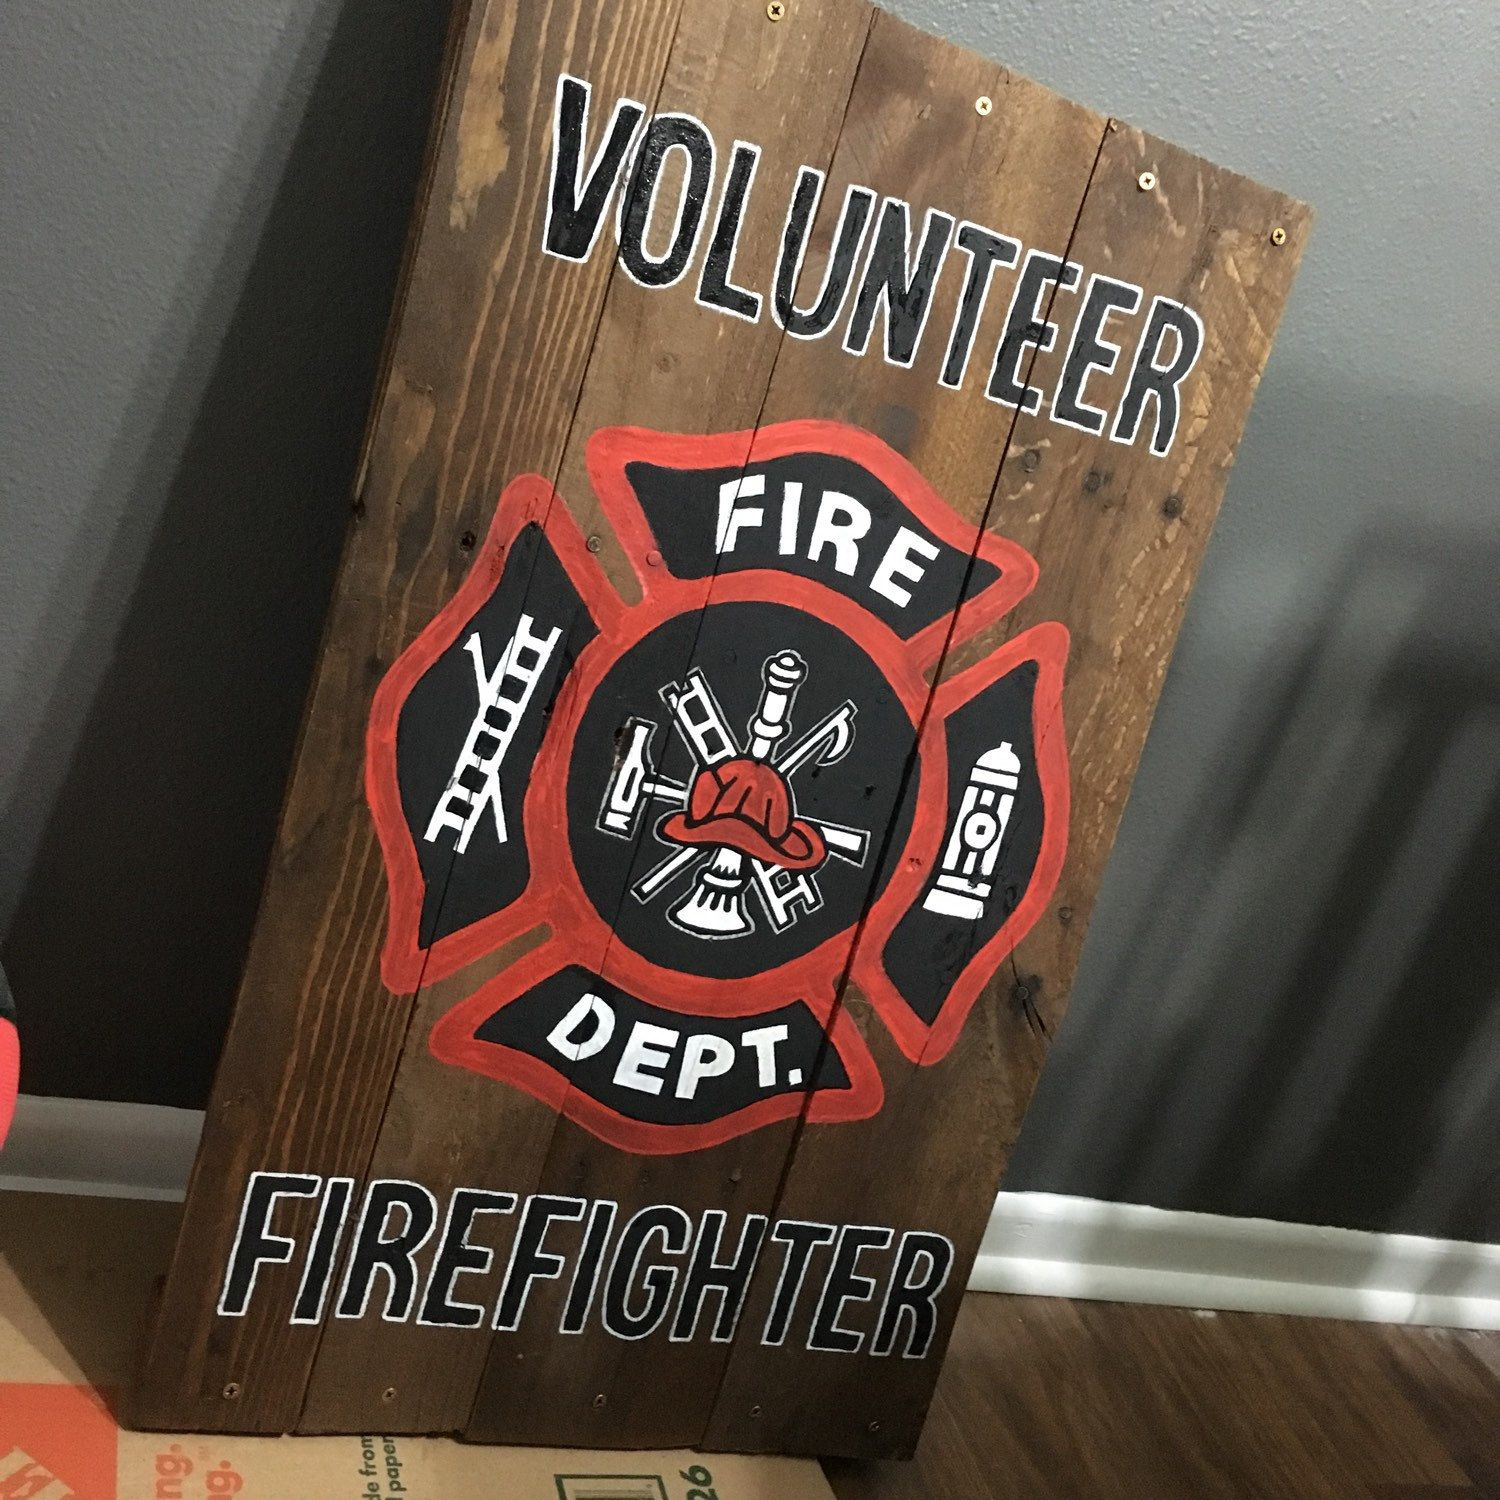 Being a firefighter takes bravery, courage and selflessness. I'm grateful to have a few volunteer firefighters in my family and love making gifts for others.